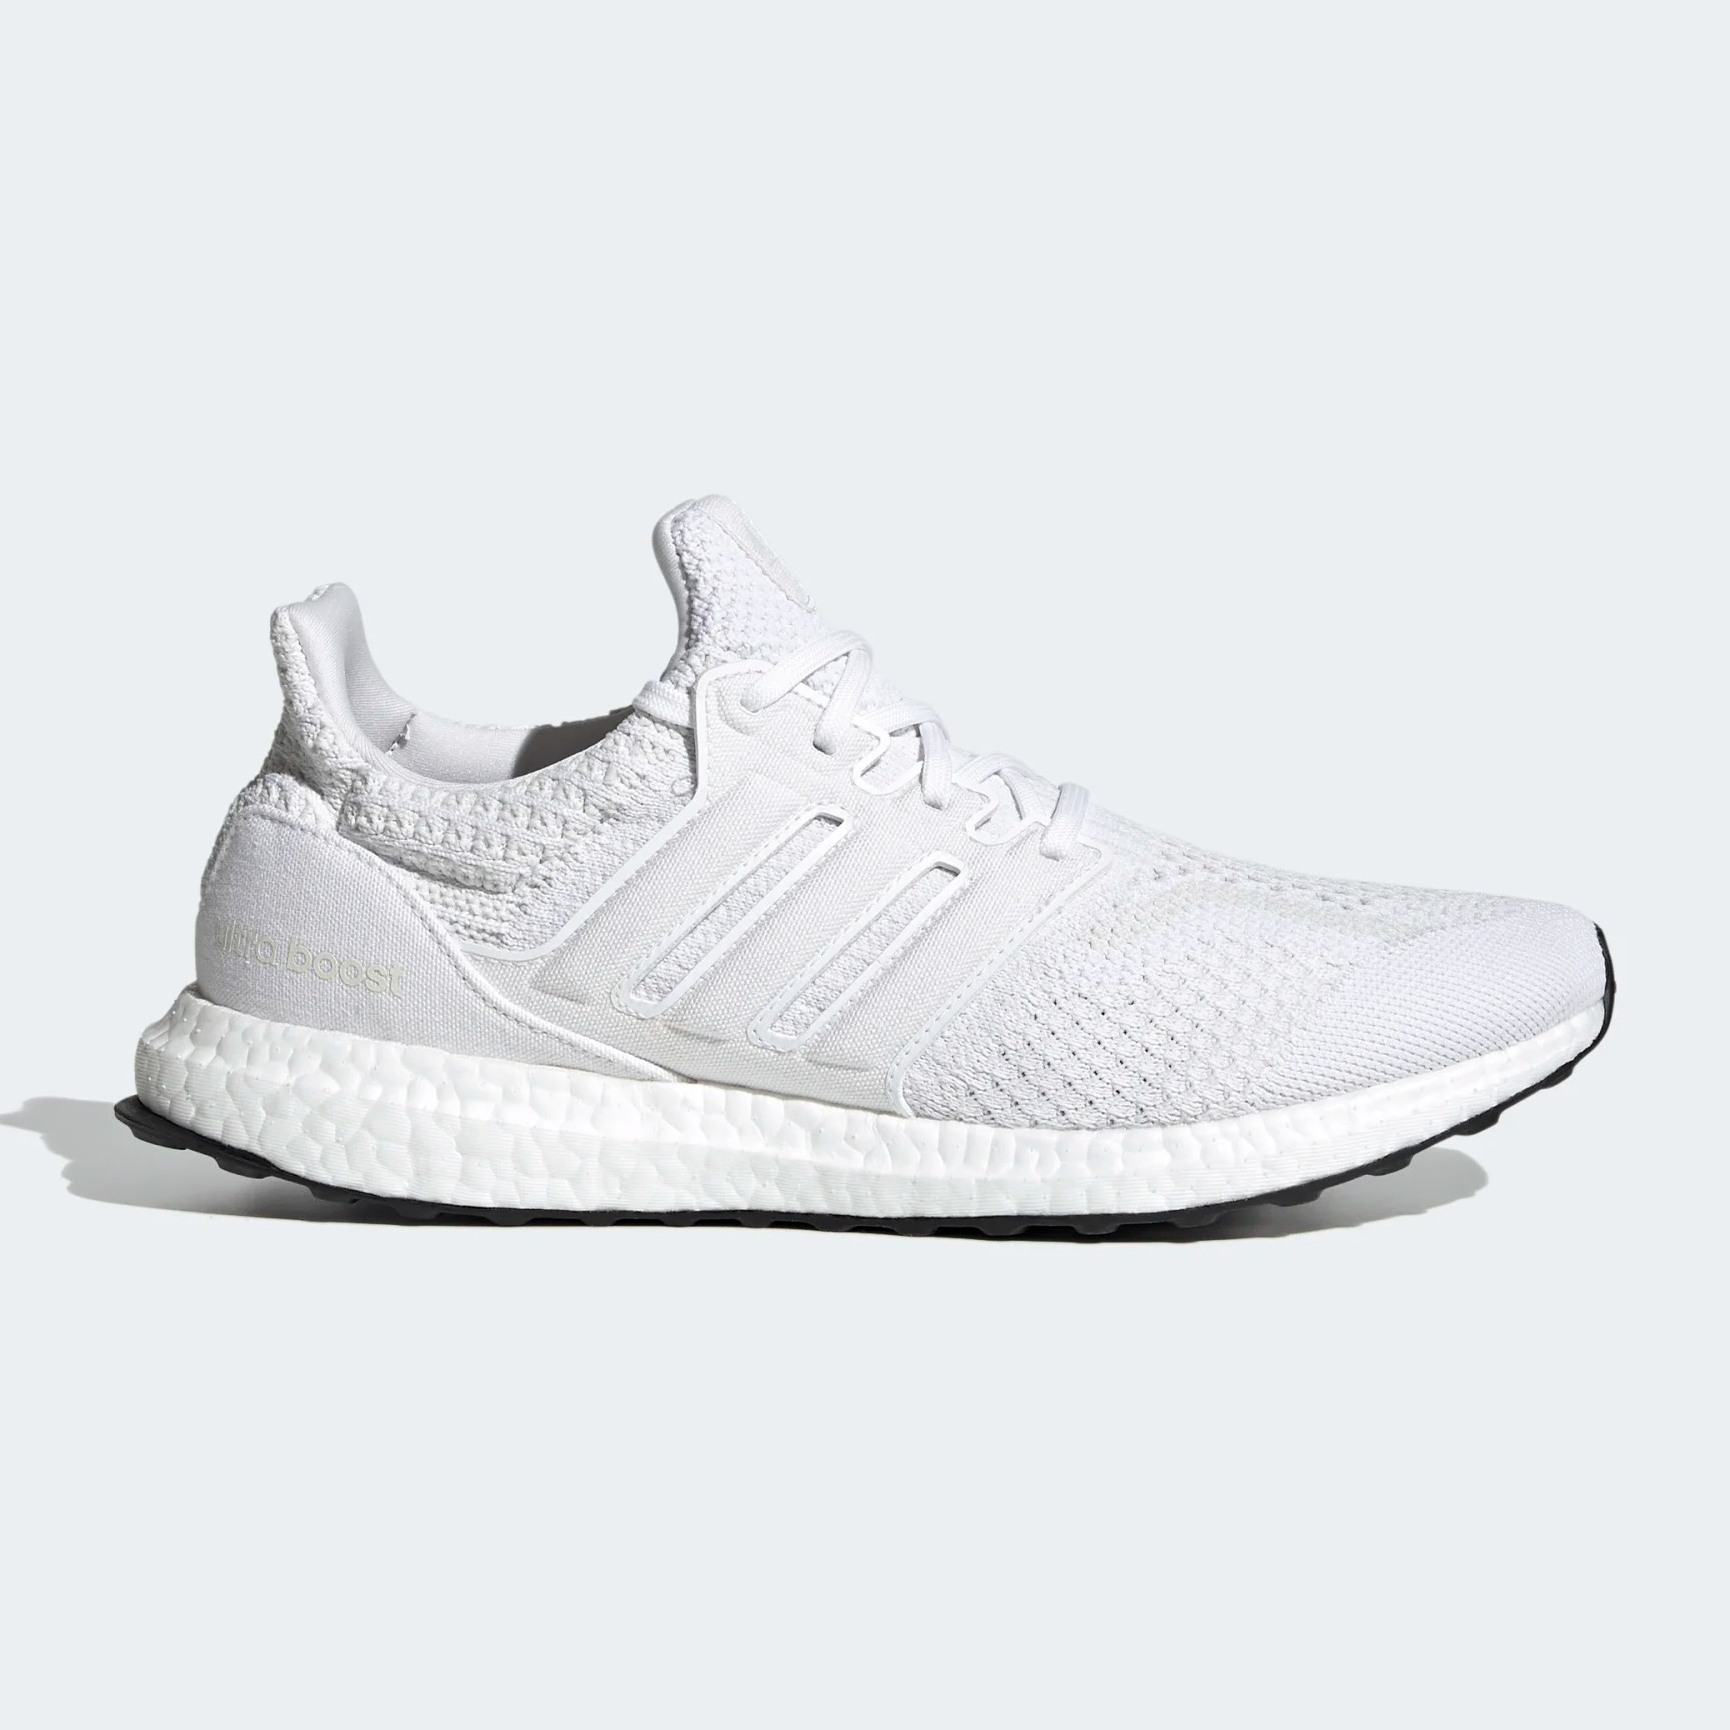 most comfortable sneakers - adidas Ultraboost 5.0 DNA Shoes